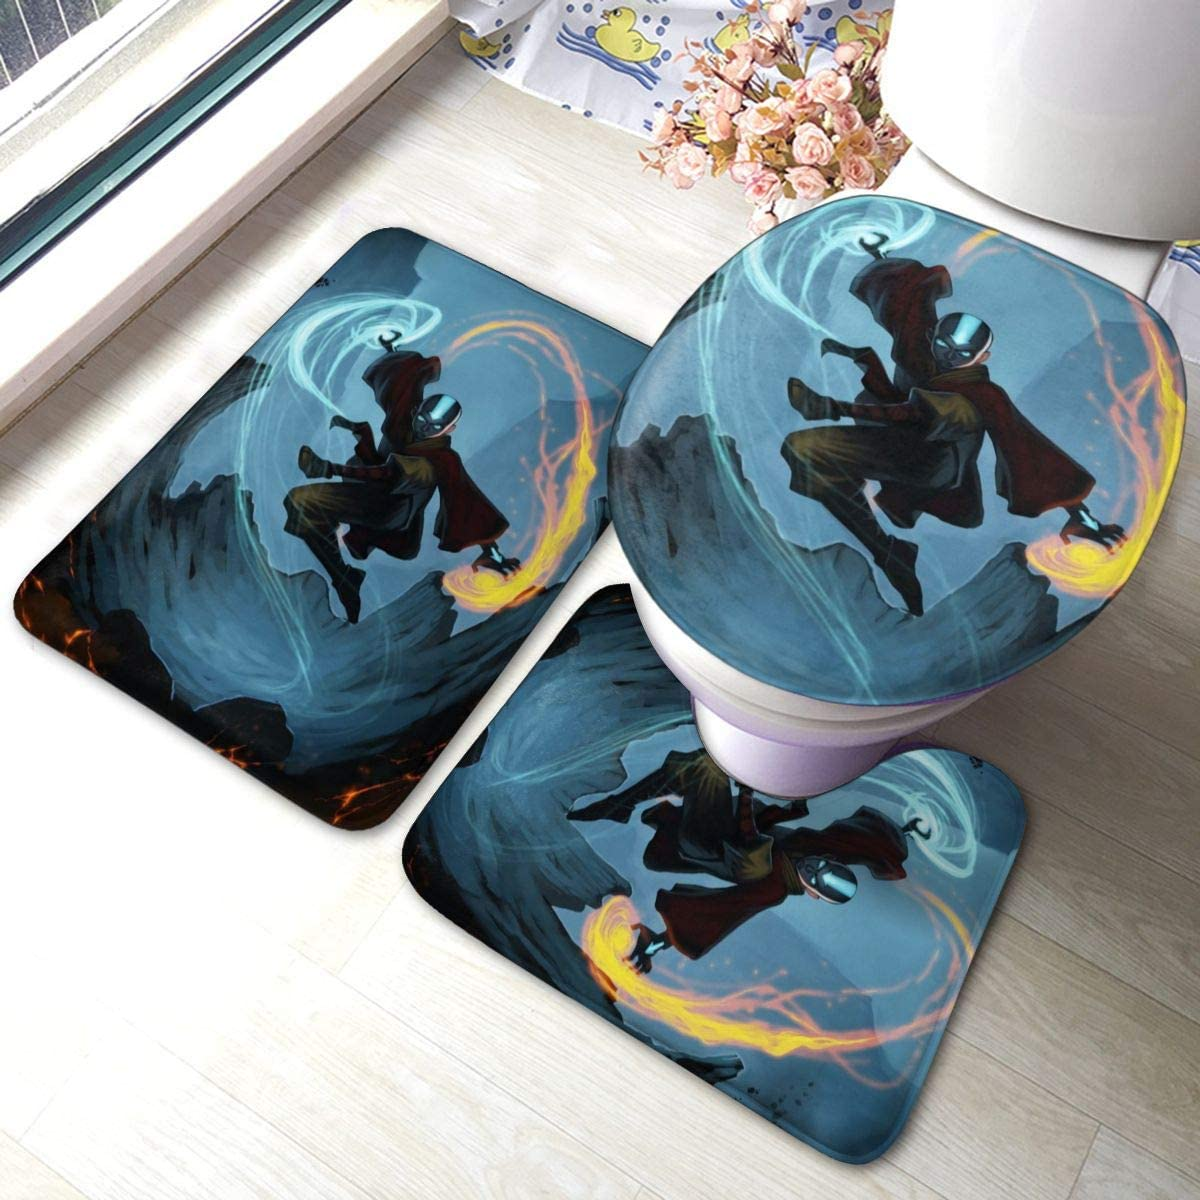 The Last Legend Airbender Bathroom Rugs Set Rubber-Backed Non-Slip 3 Piece Toilet Set Durable Bathroom Mats, Non-Slip Bathroom Floor Mat+ U-Shaped Toilet Mat + Toilet Seat Cover